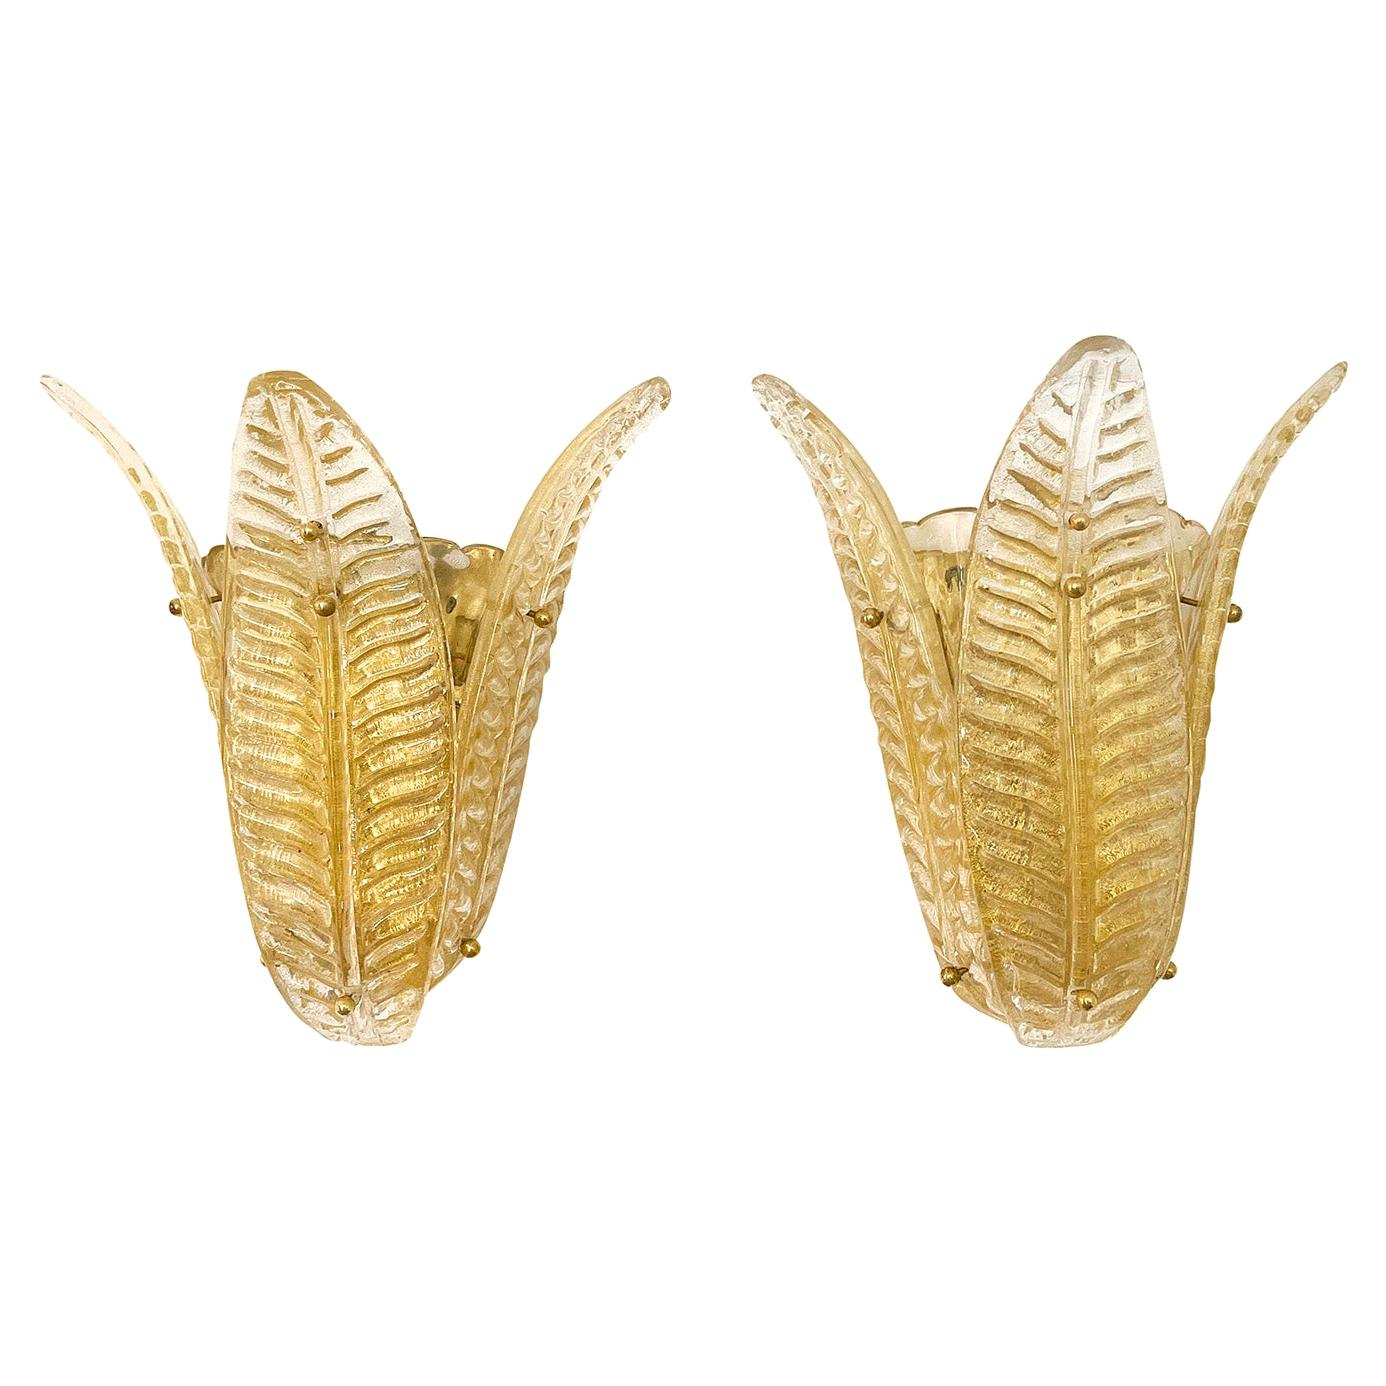 20th Century Italian Pair of Murano Glass Sommerso, Brass Leaf Wall Appliques